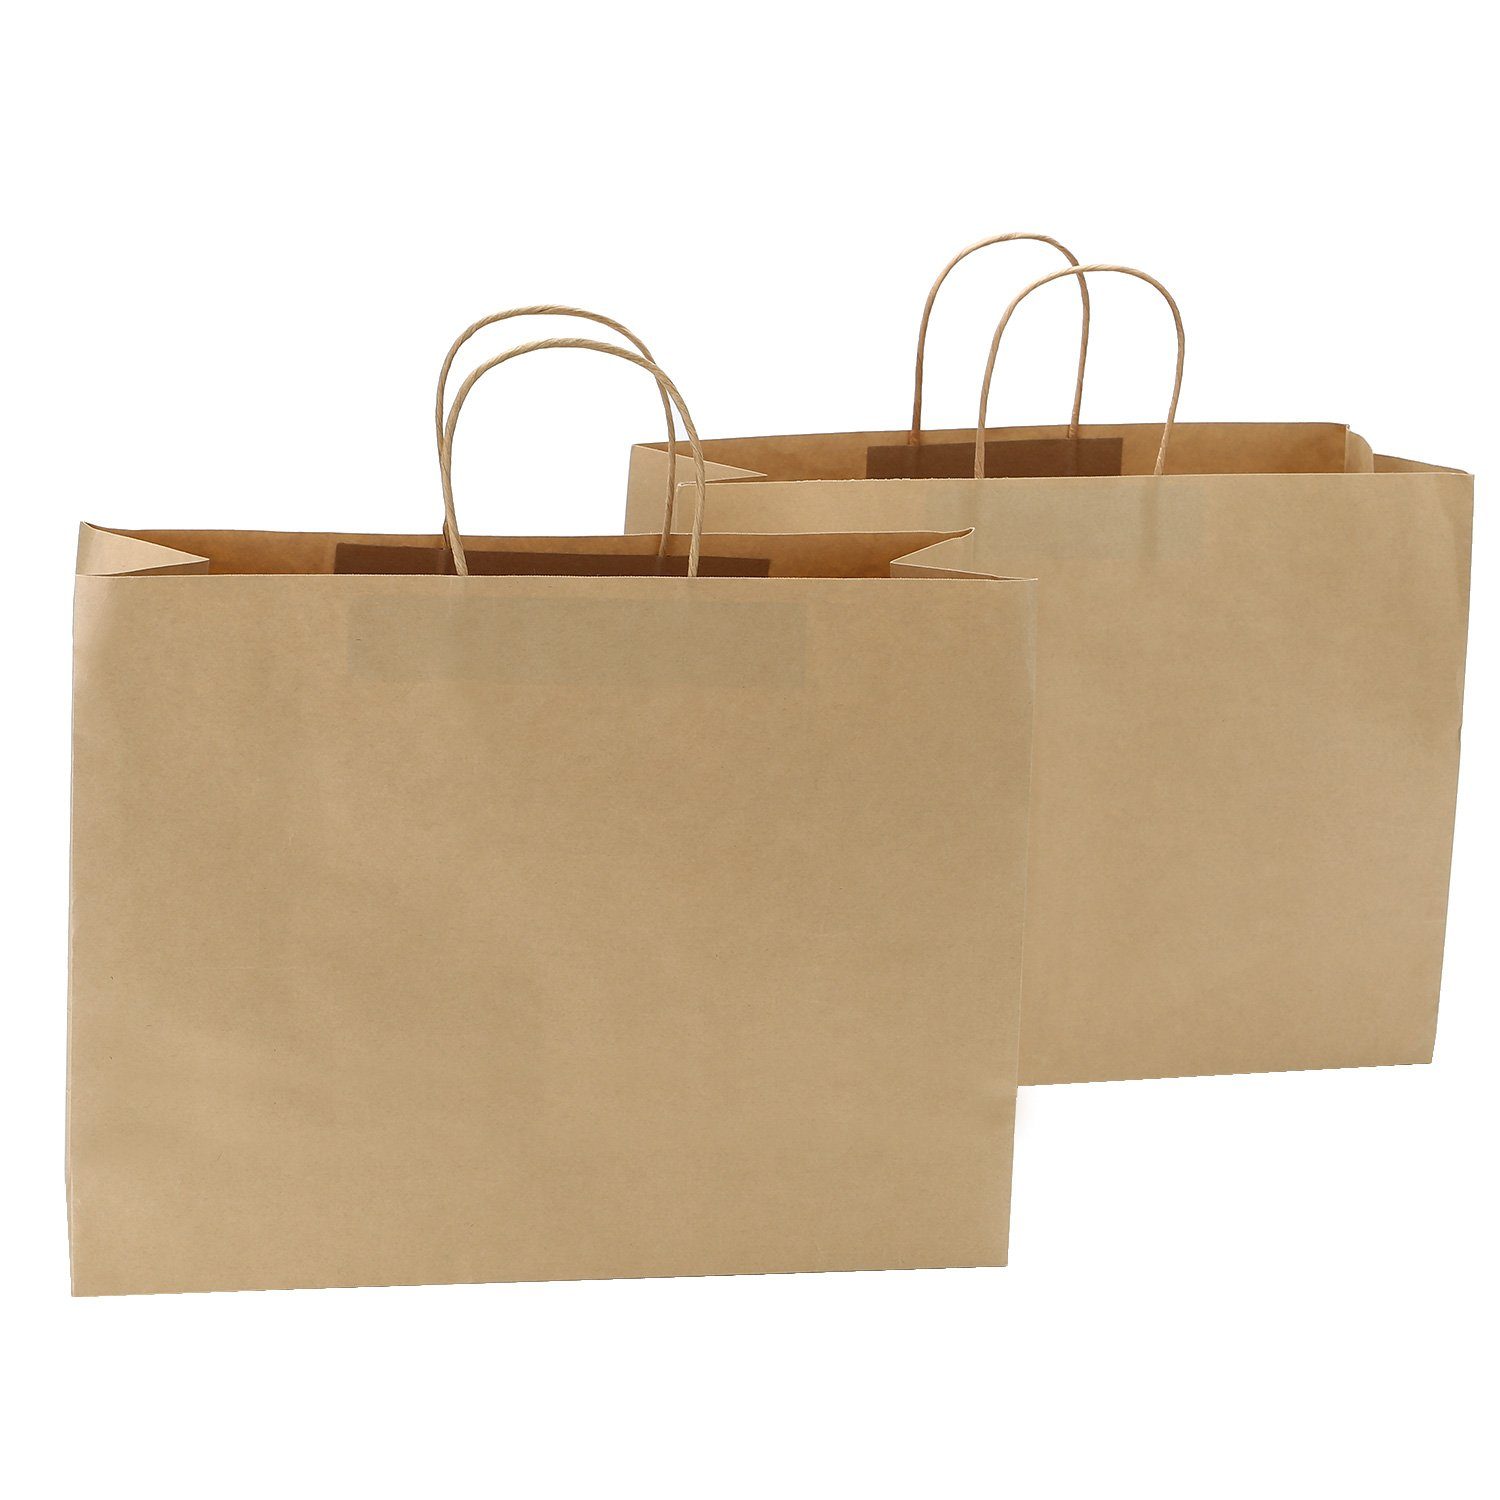 Road 16x6x12 Inches 100 Pcs Large Kraft Brown Paper Bags with Handles, Shopping, Grocery, Mechandise, Party Bags by Road